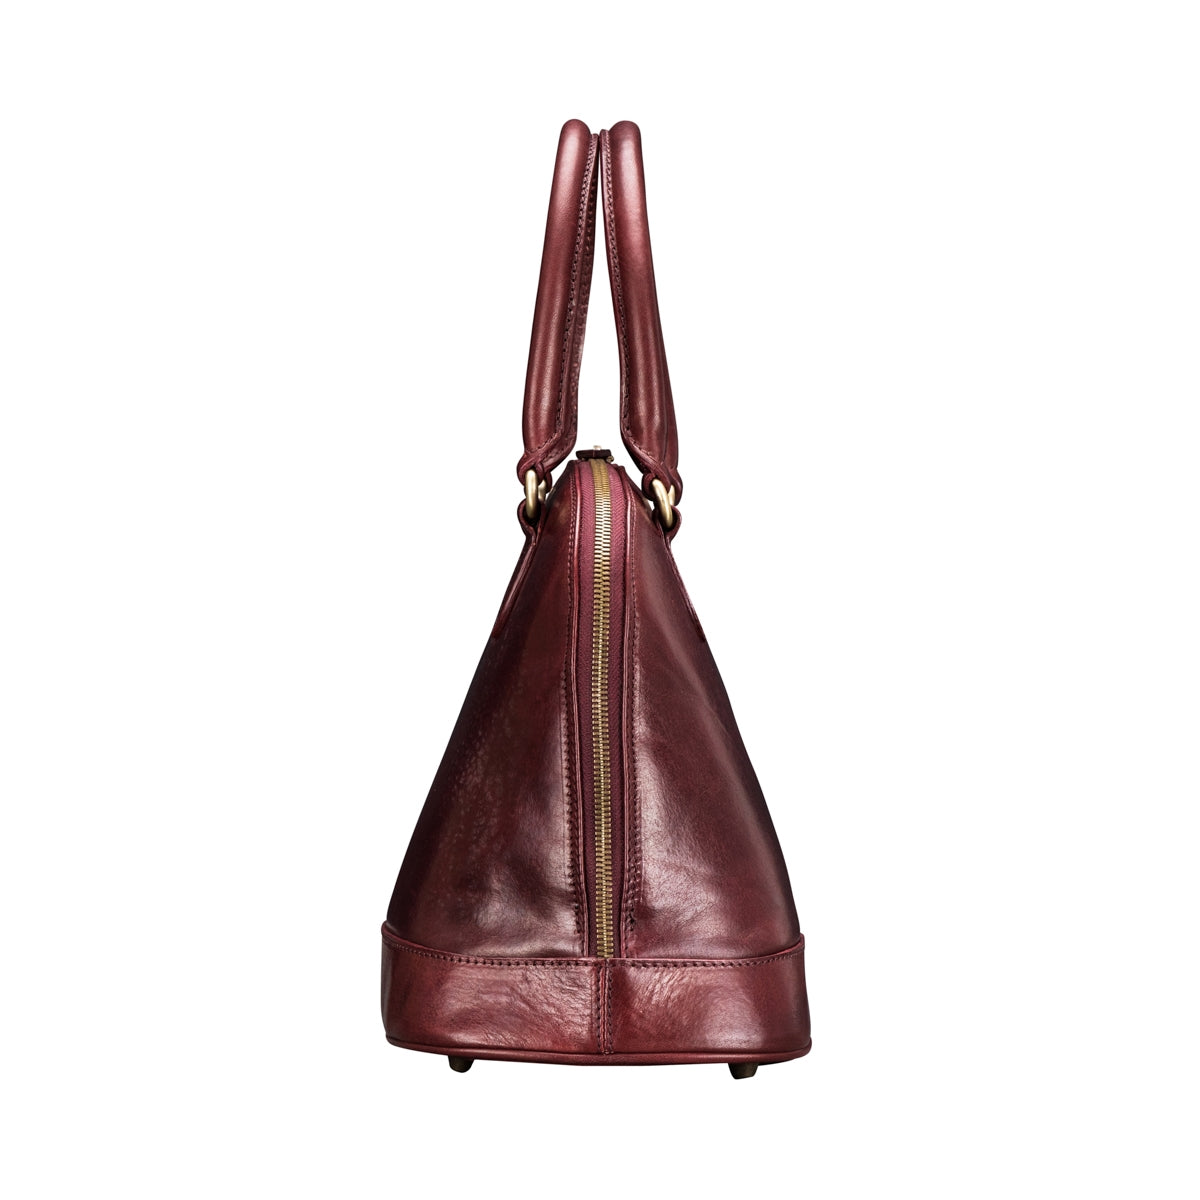 Image 3 of the 'Rosa' Italian Wine Leather Classic Ladies Handbag